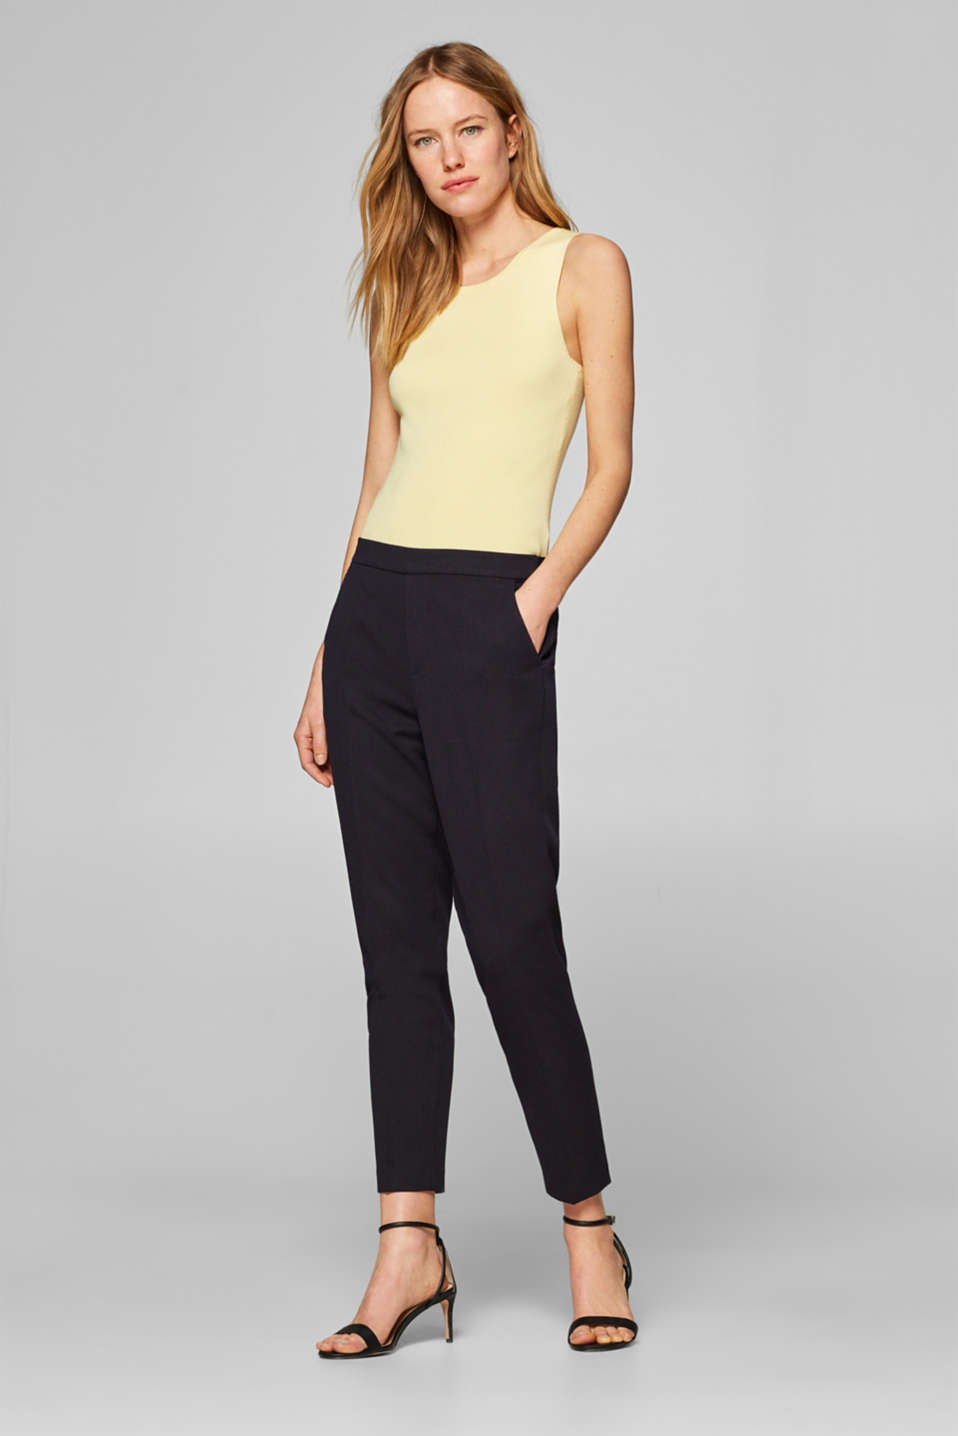 edc - Textured stretch trousers with an elasticated waistband